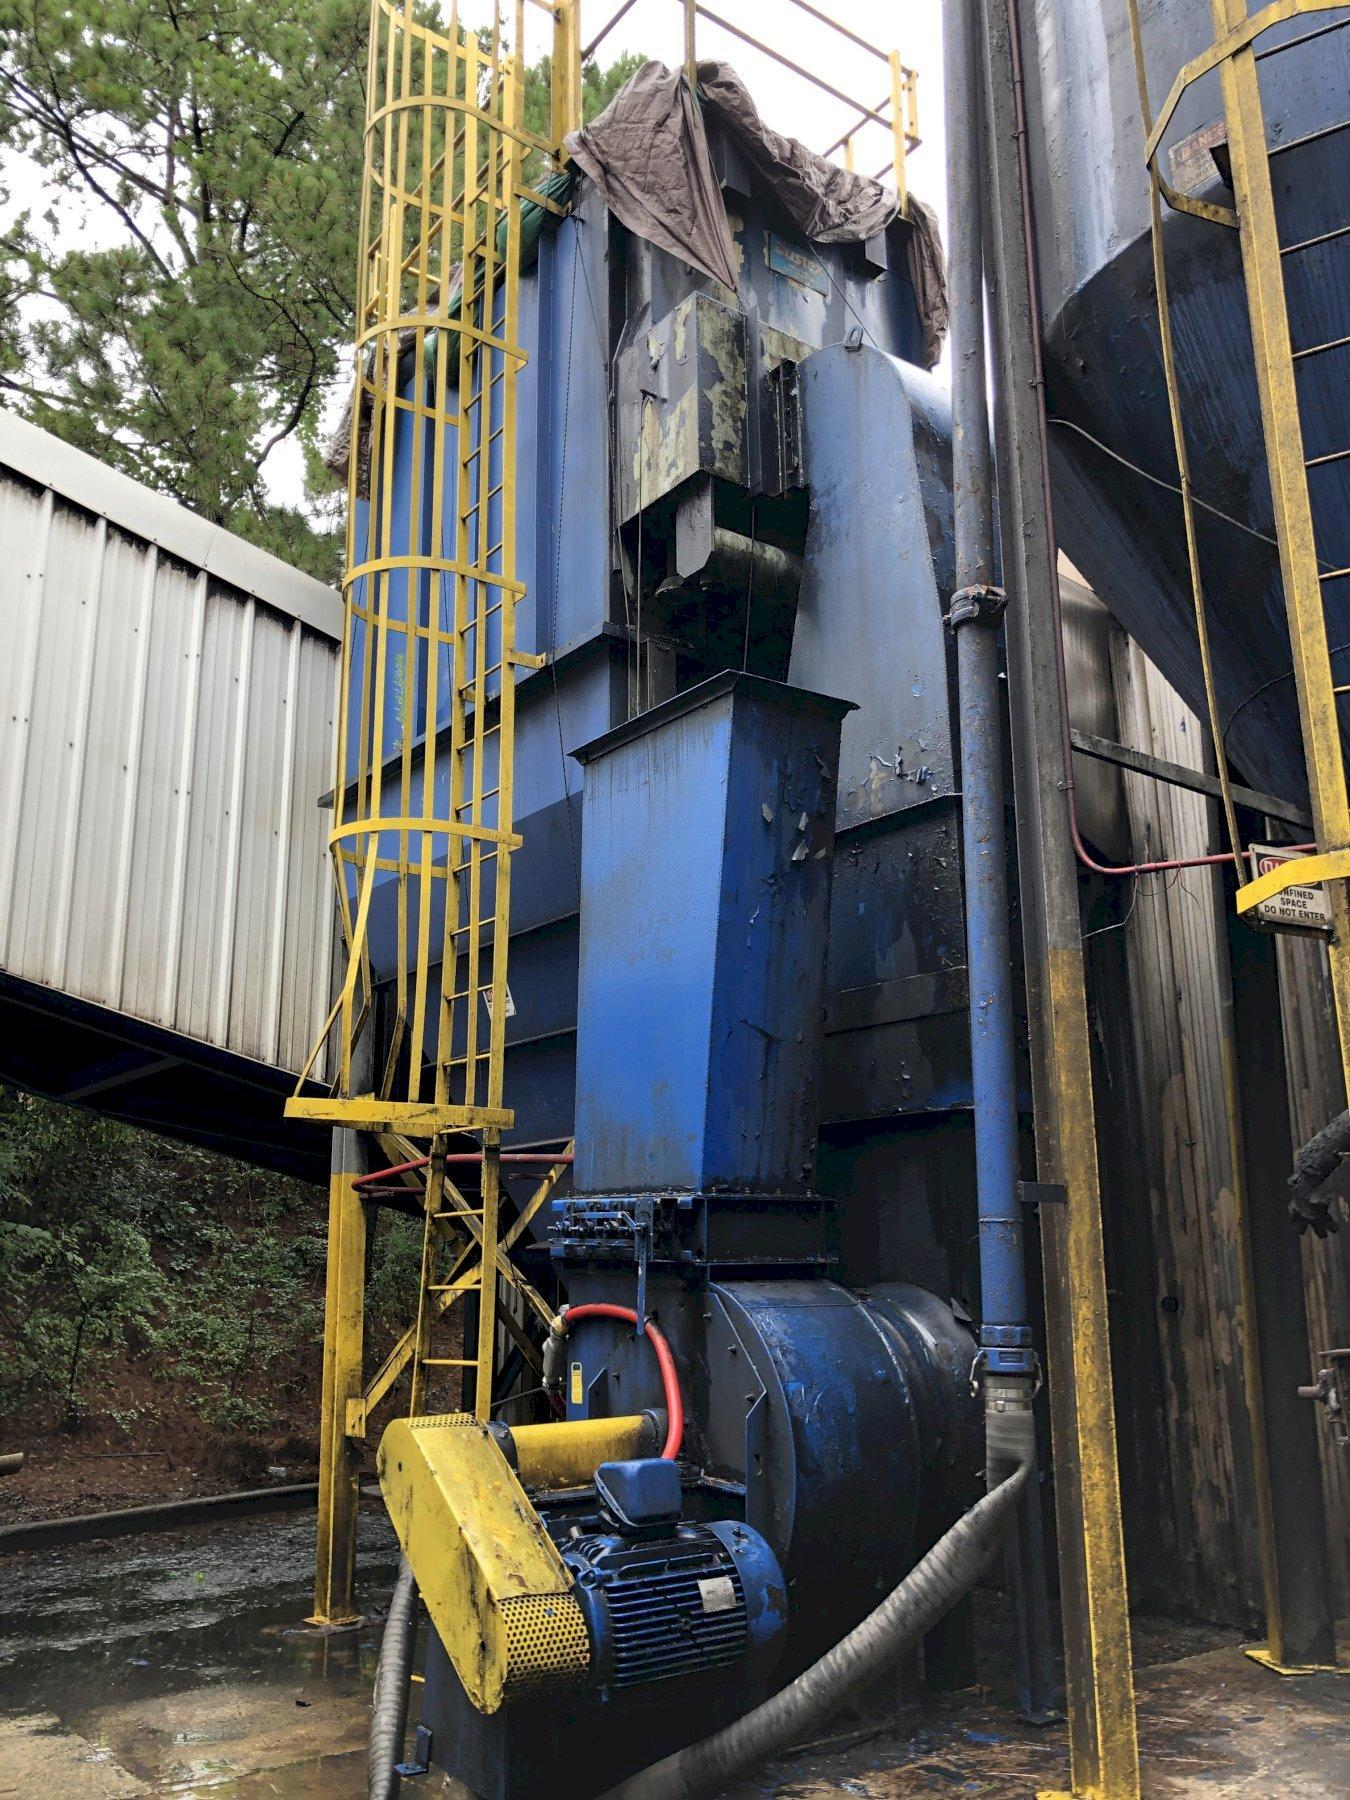 DUSTEX MODEL 3630-11-8 60 HP PULSE BAG DUST COLLECTOR S/N A301039, RATED AT 15,000 CFM